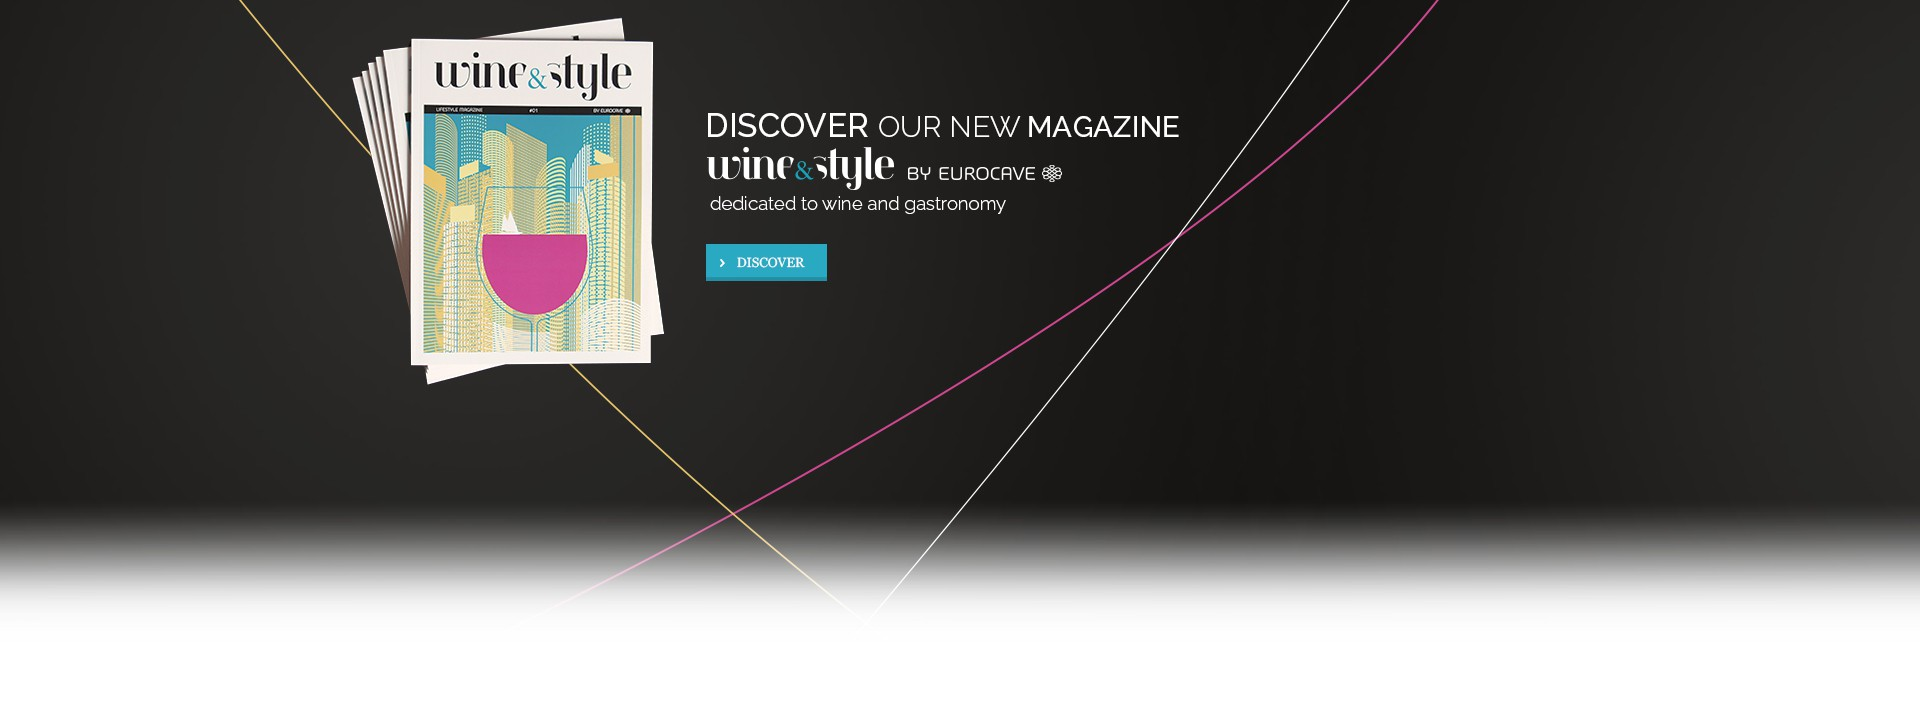 Wine&Style - The new lifestyle magazine by EuroCave dedicated to wine and gastronomy.